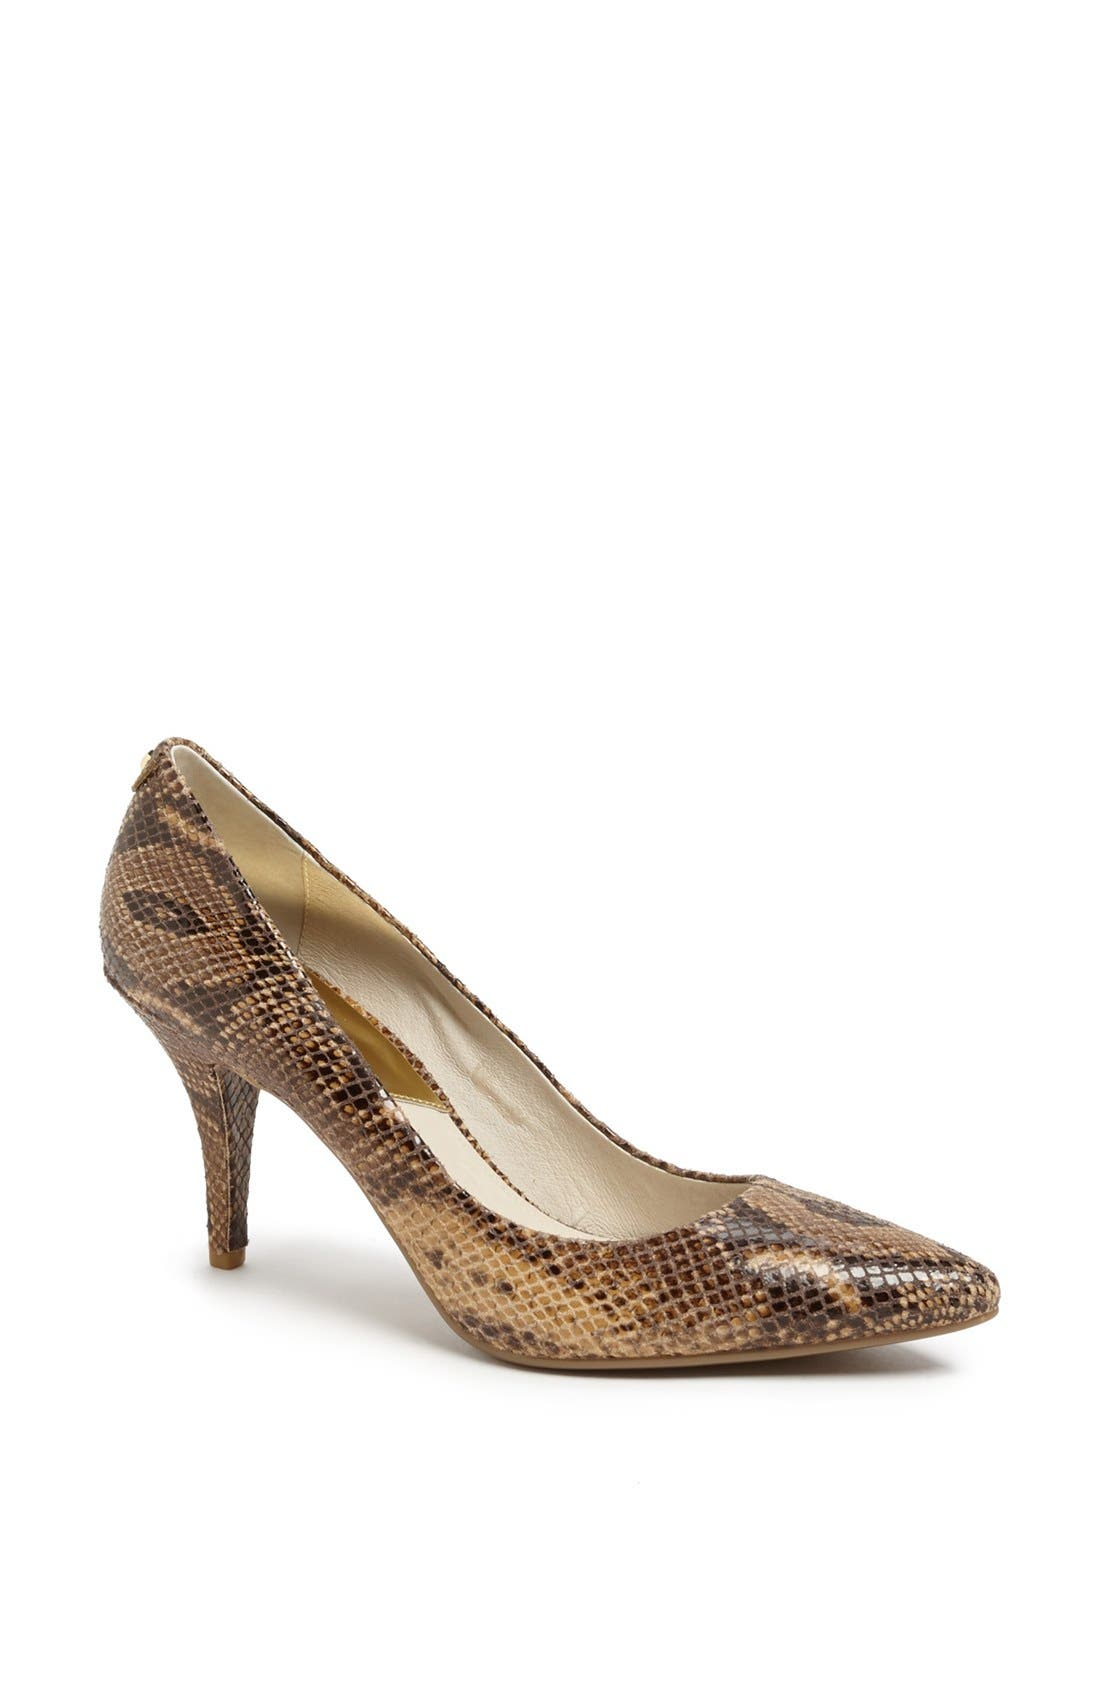 Main Image - MICHAEL Michael Kors 'Flex' Pump (Women)